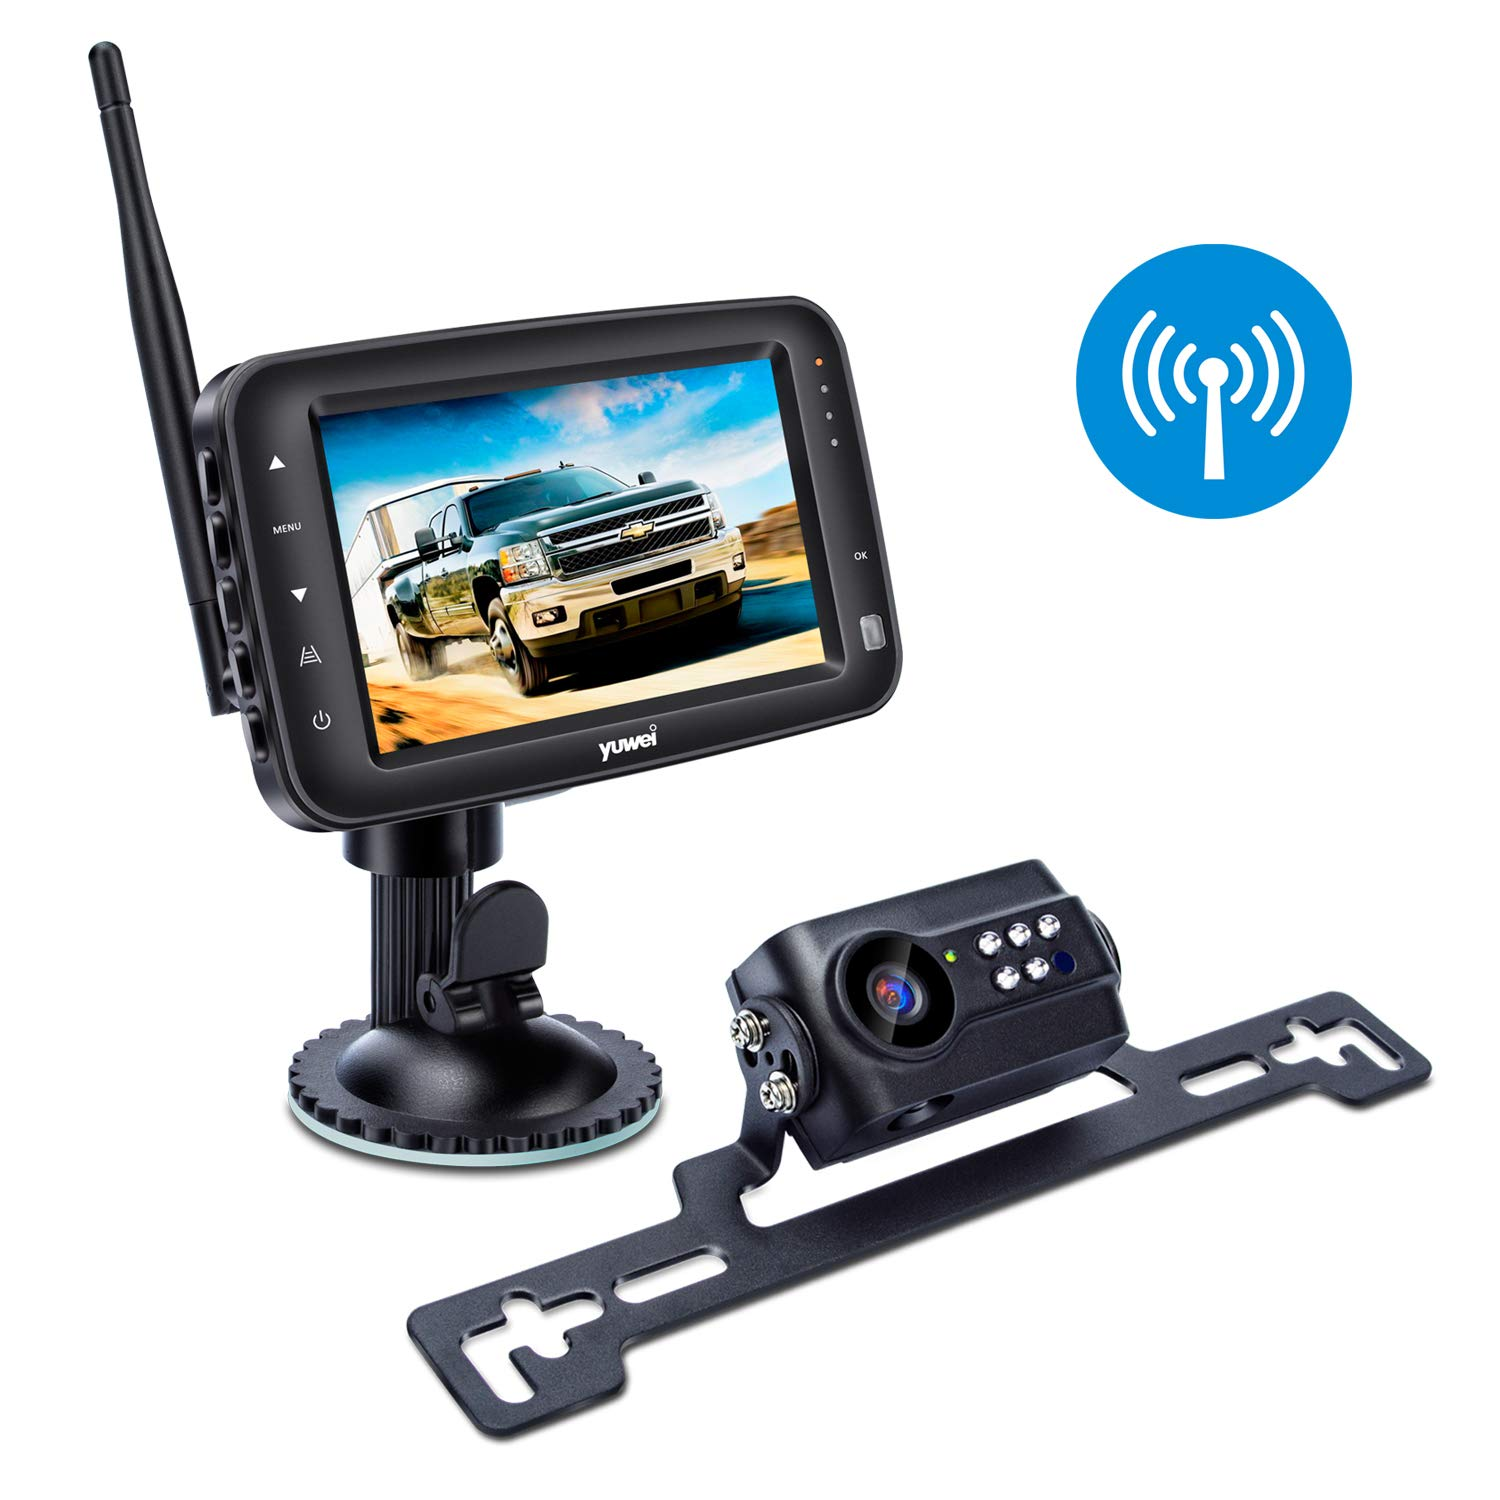 Yuwei Wireless Backup Camera System - Best Wireless Backup Cameras